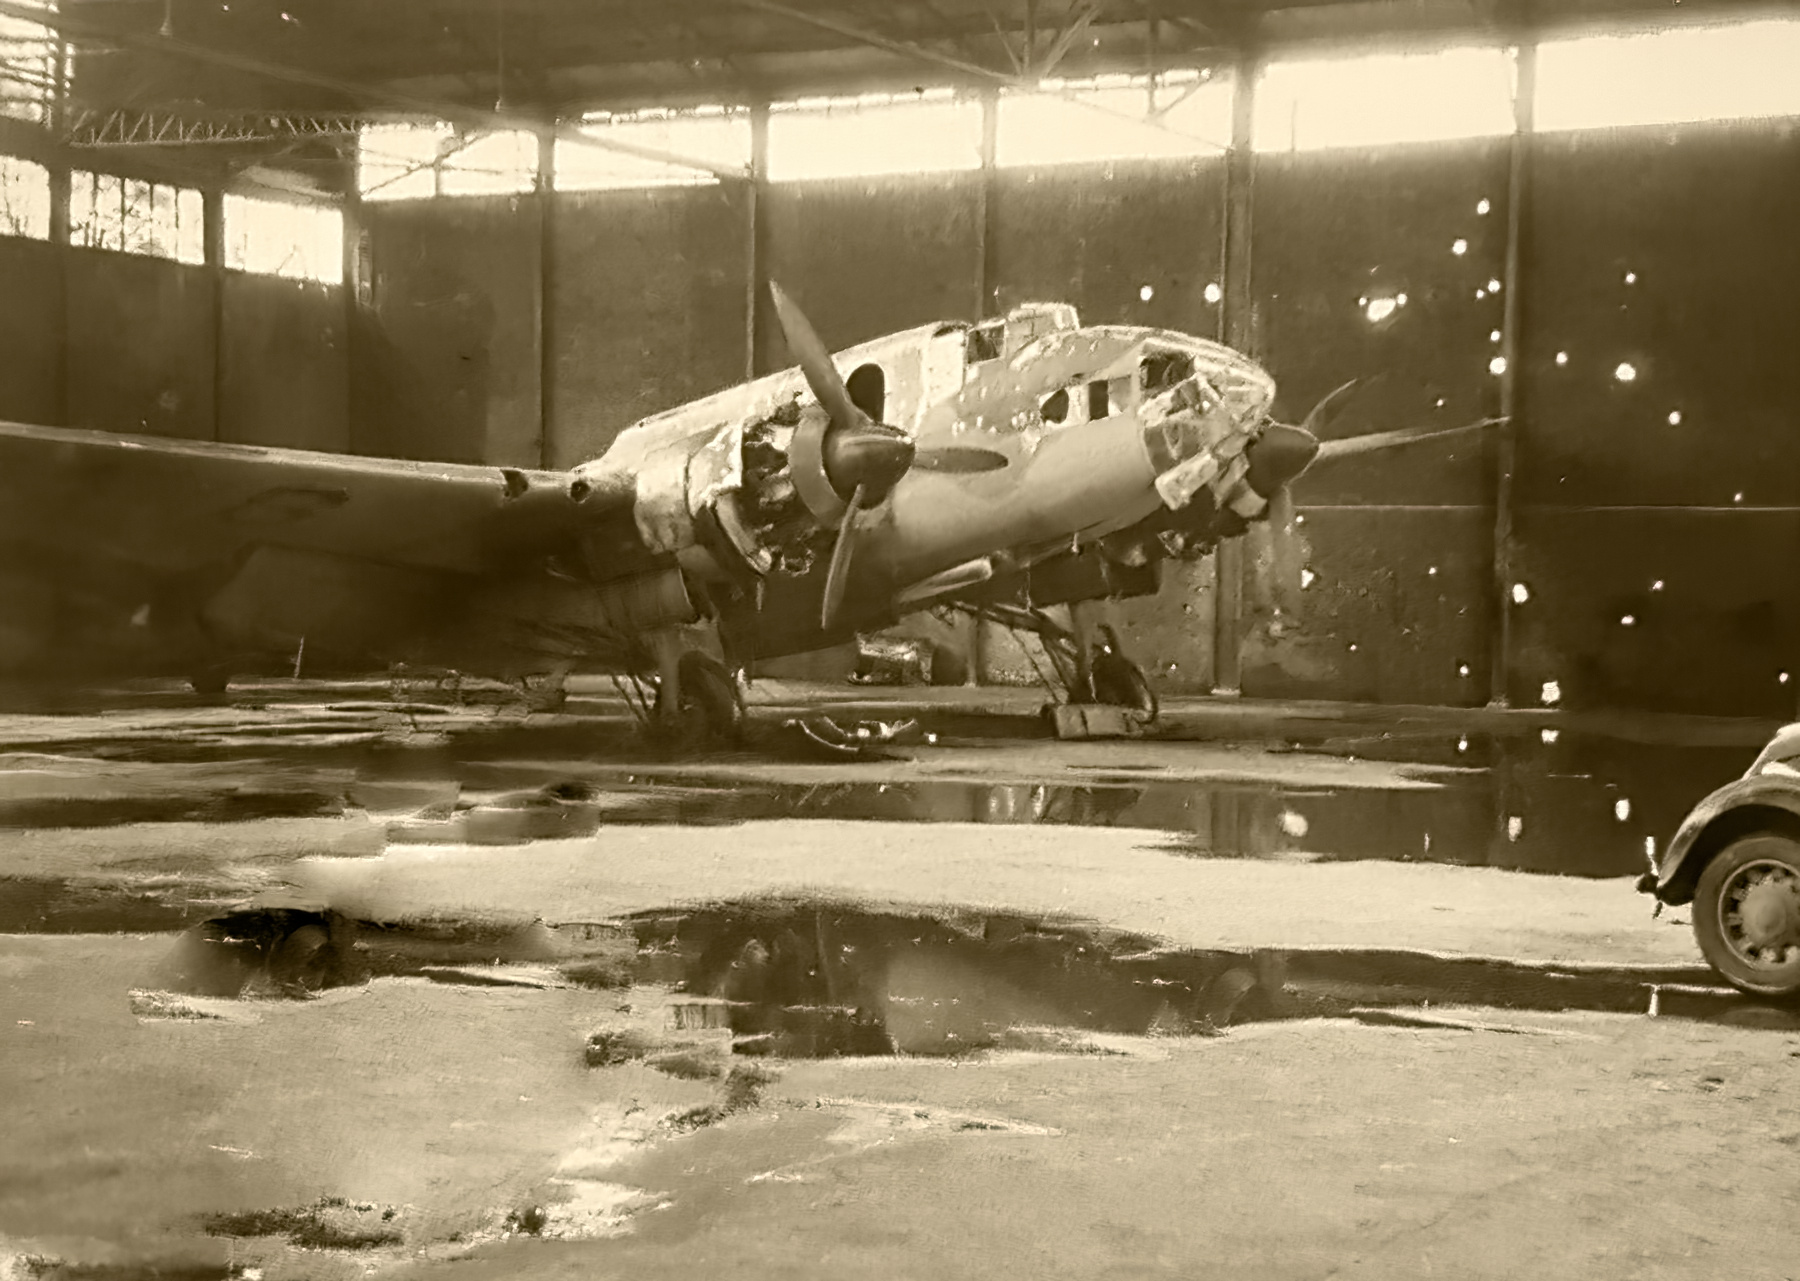 French Airforce Liore et Olivier LeO 451 abandoned in a hangar France 1940 ebay 01